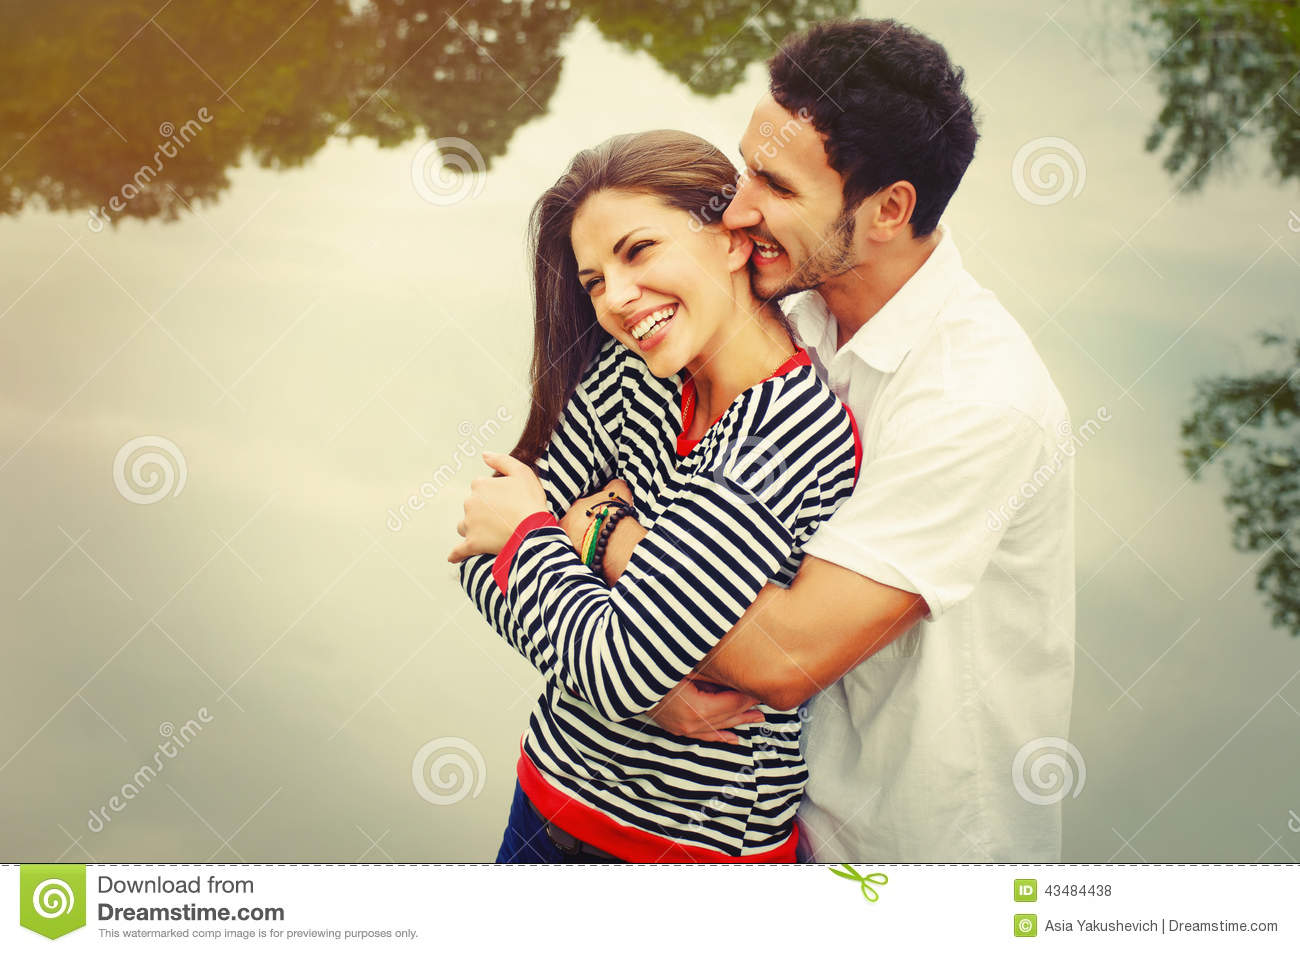 love and happy couples 2018-1-15 if you've wondered how some couples can be so very happy all the time, you'd be amazed at the habits they follow.